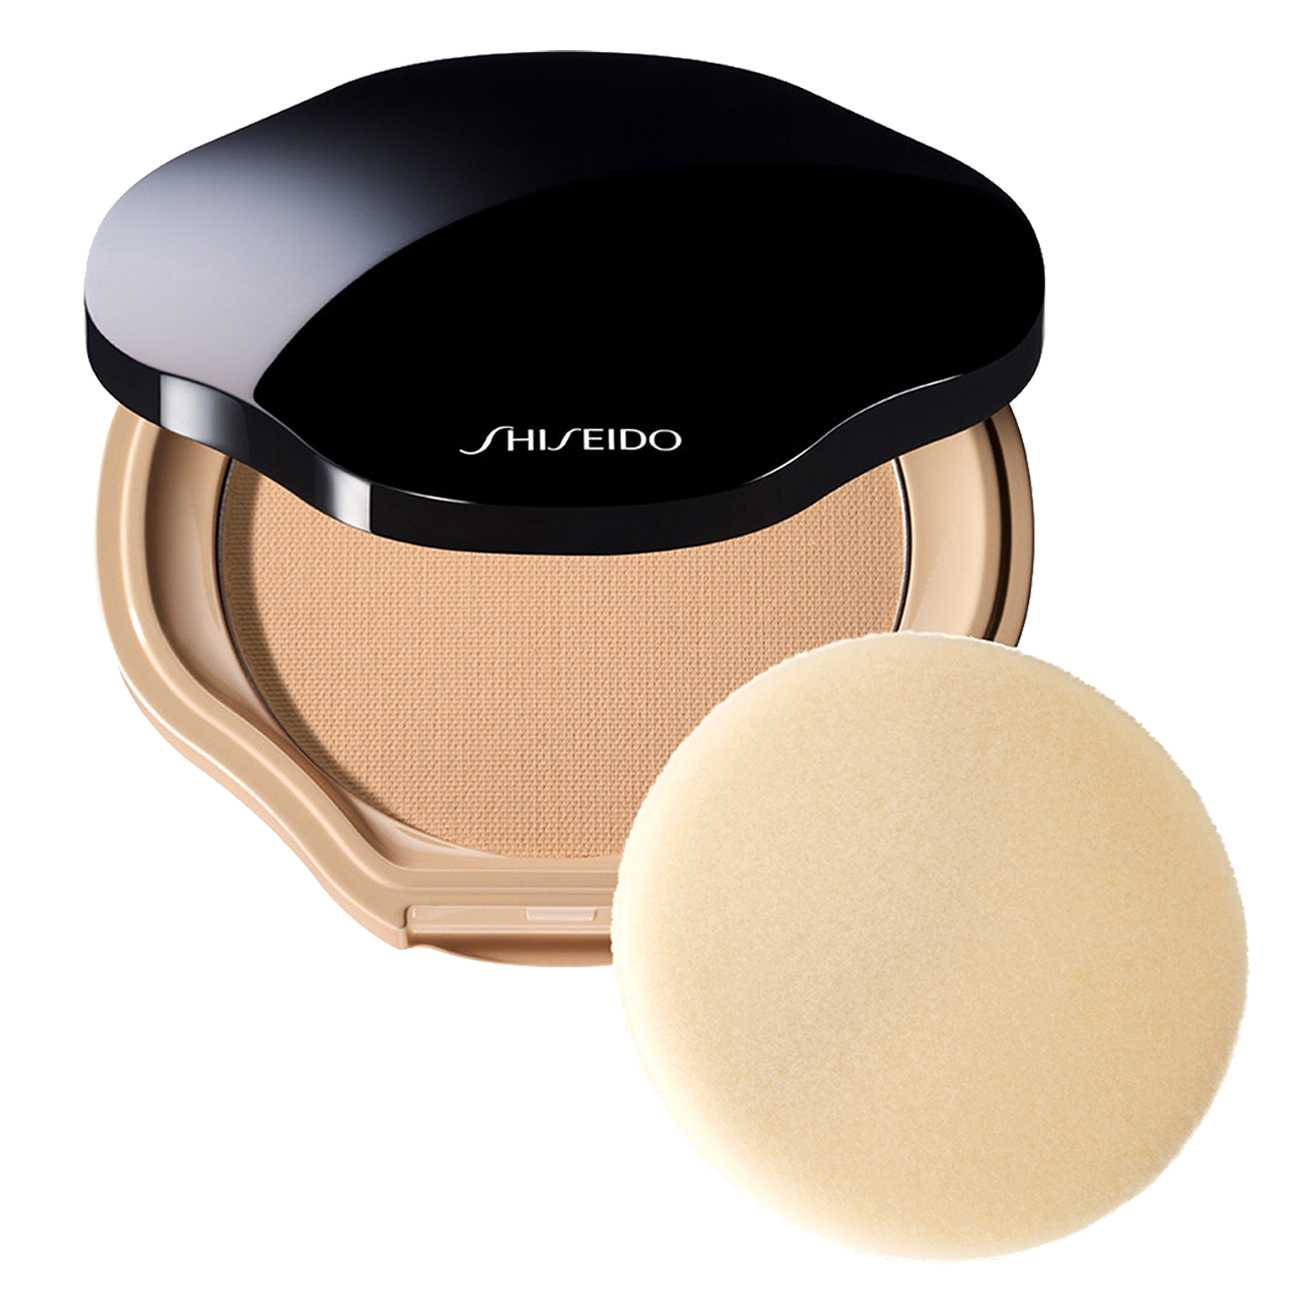 Sheer And Perfect Compact 10 G Natural Light Ivory I20 Shiseido imagine 2021 bestvalue.eu